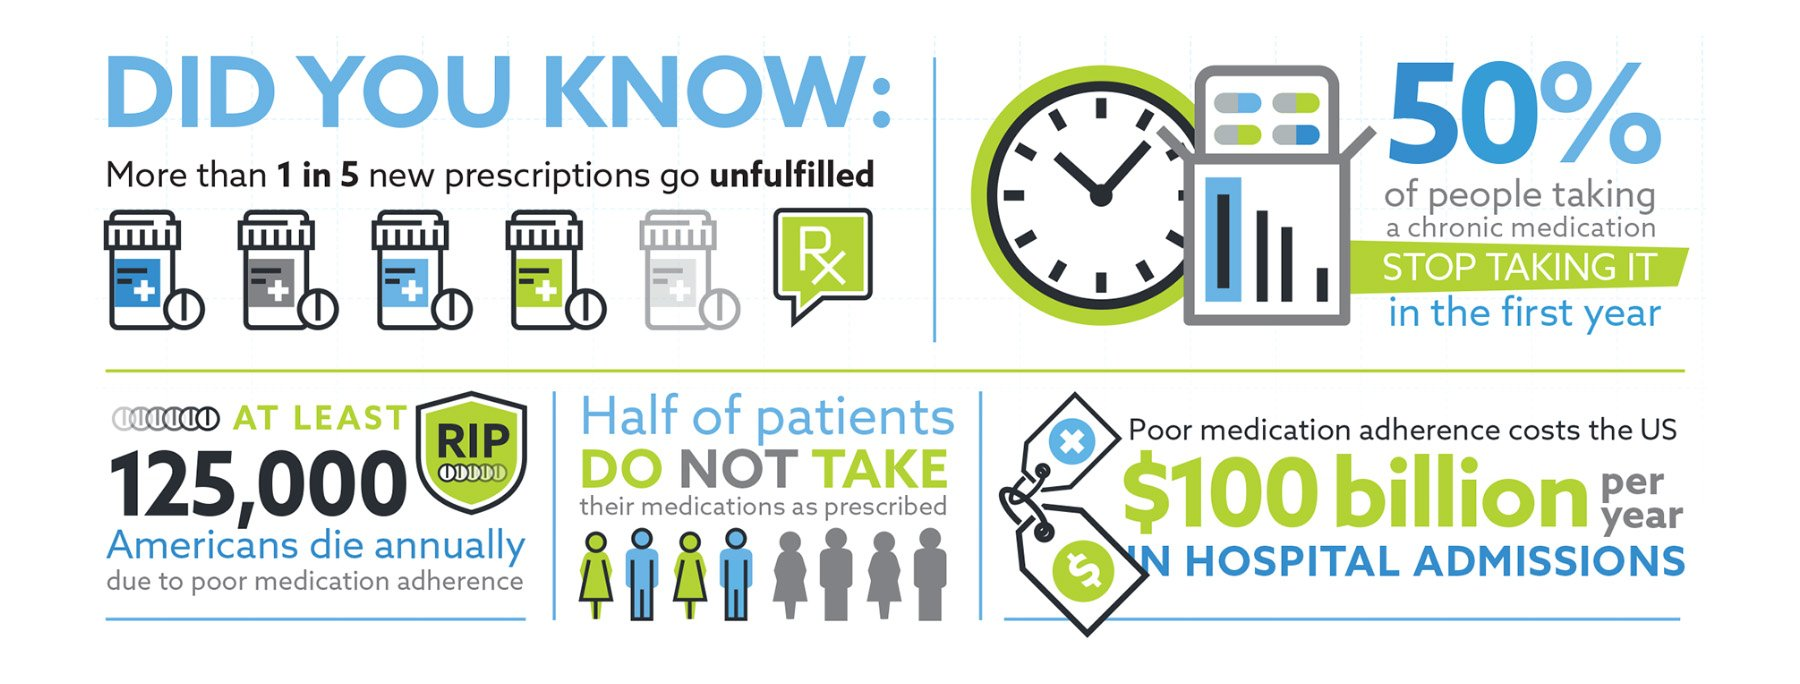 Infographic on Medication Adherence